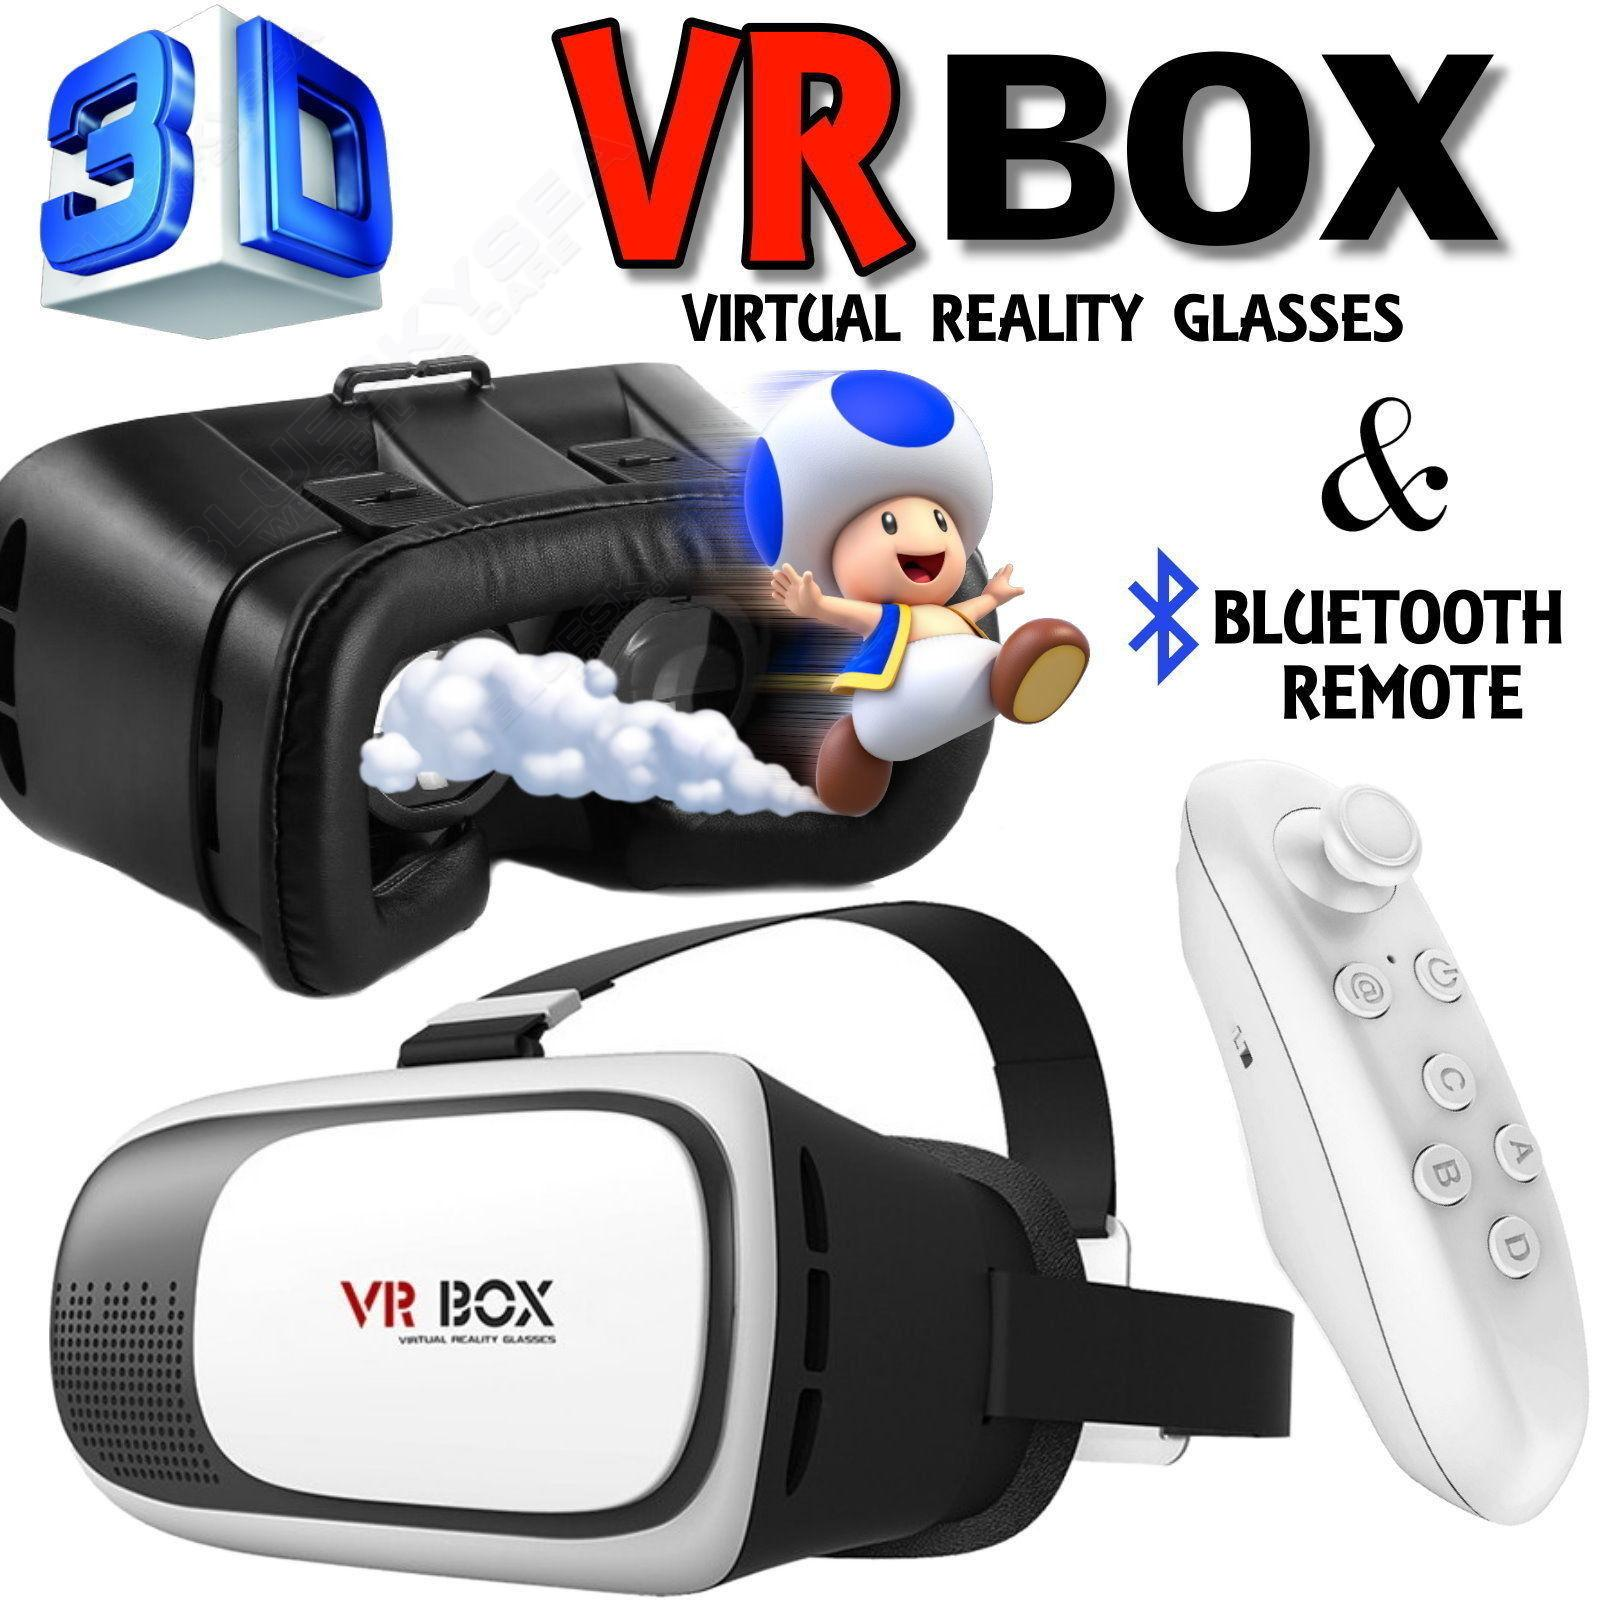 Free shipping!VR Headset Virtual Reality VR BOX Goggles 3D Glasses Google Cardboard Remote